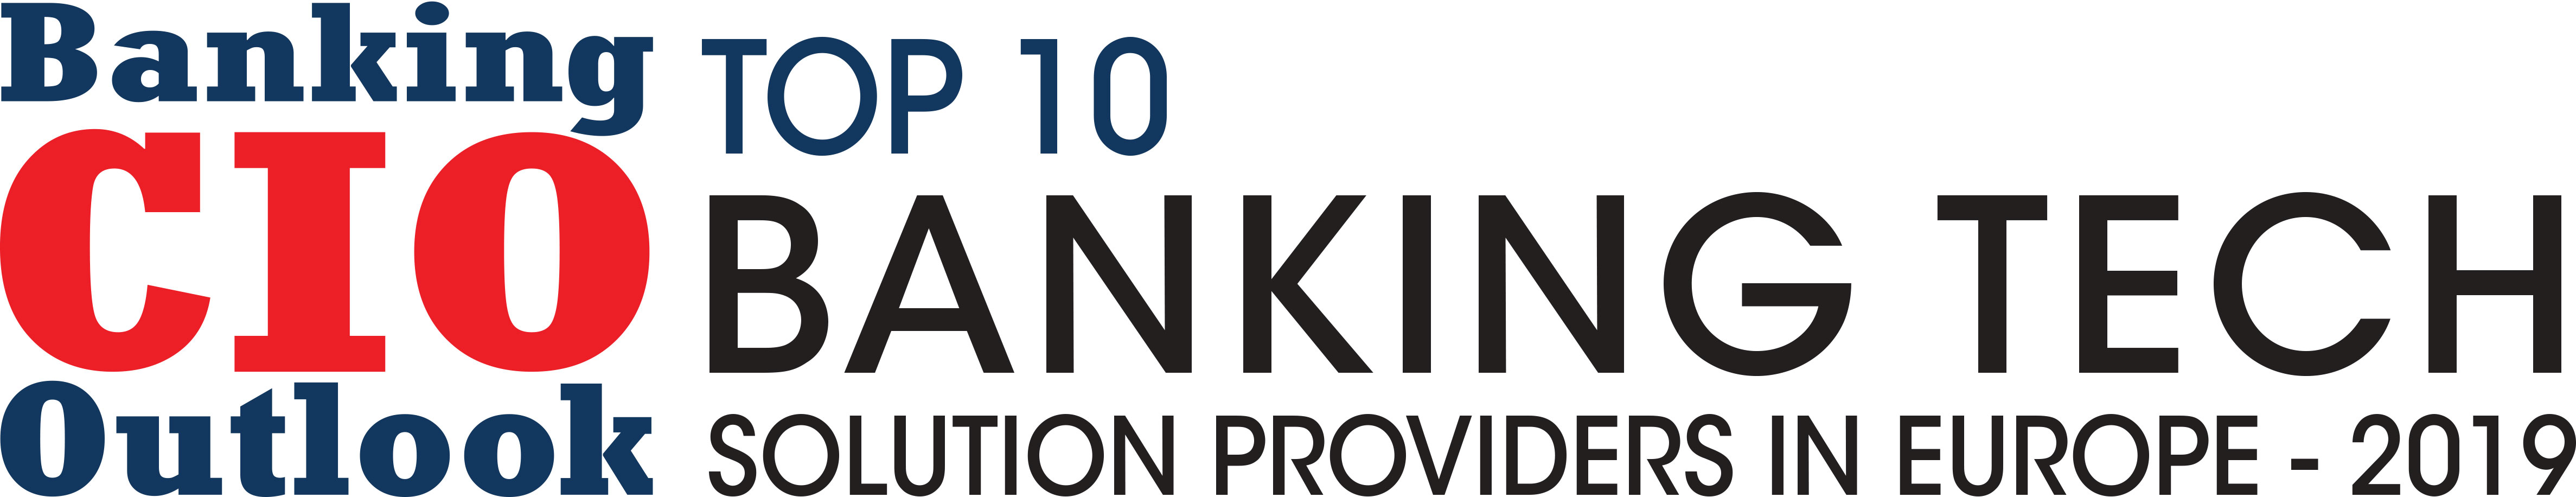 Top 10 Banking Tech Solution Companies in Europe - 2019